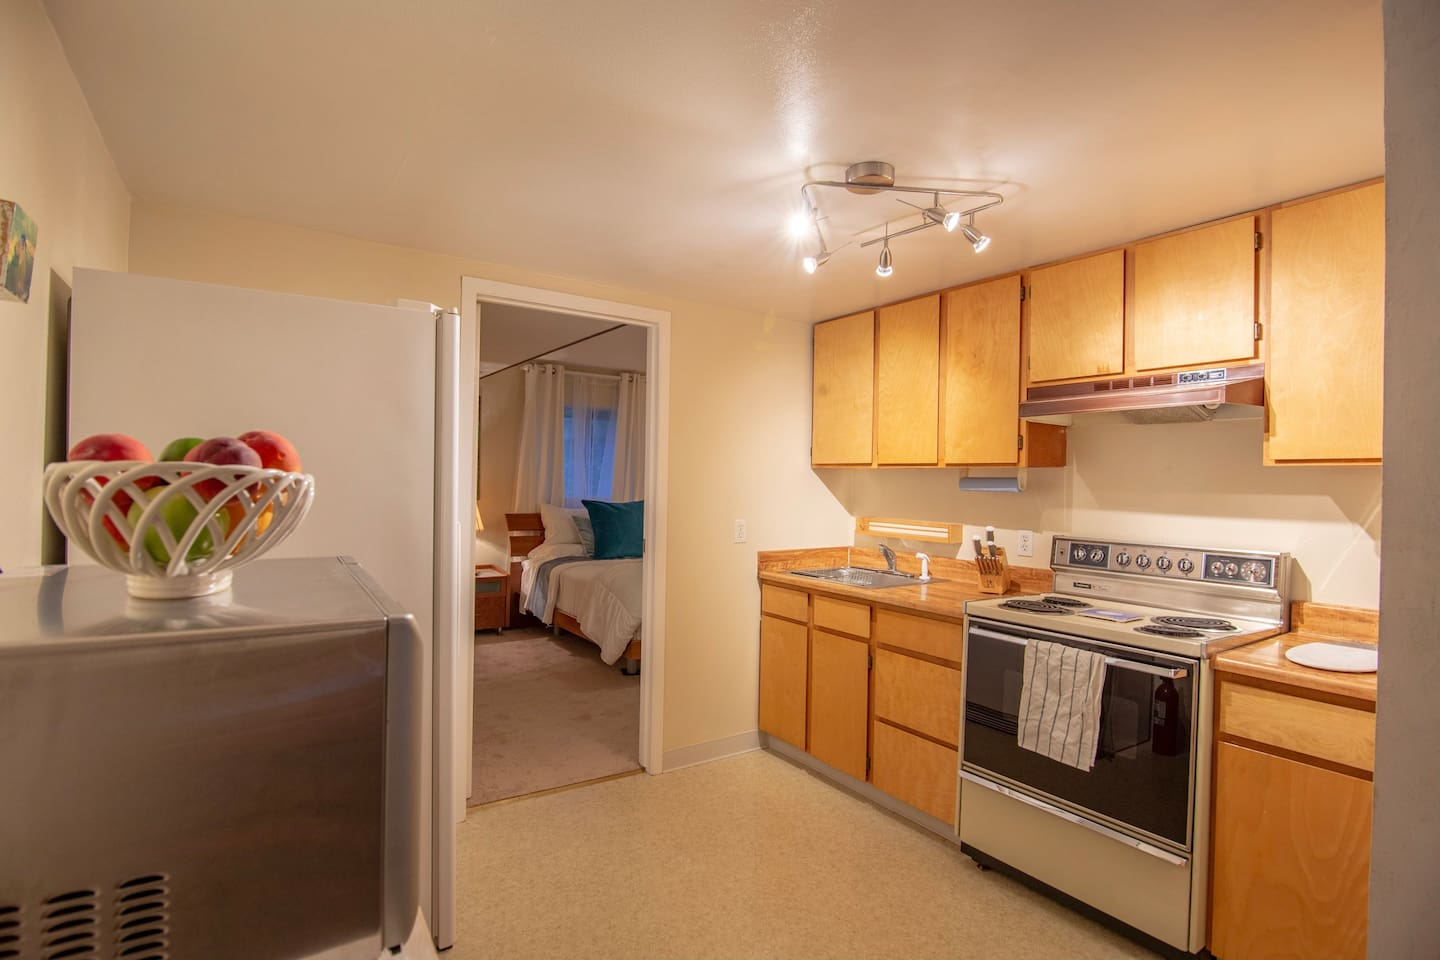 Kitchen. Cook a meal, pack a picnic for the beach, or walk 5 minutes to a cafe or restaurant.